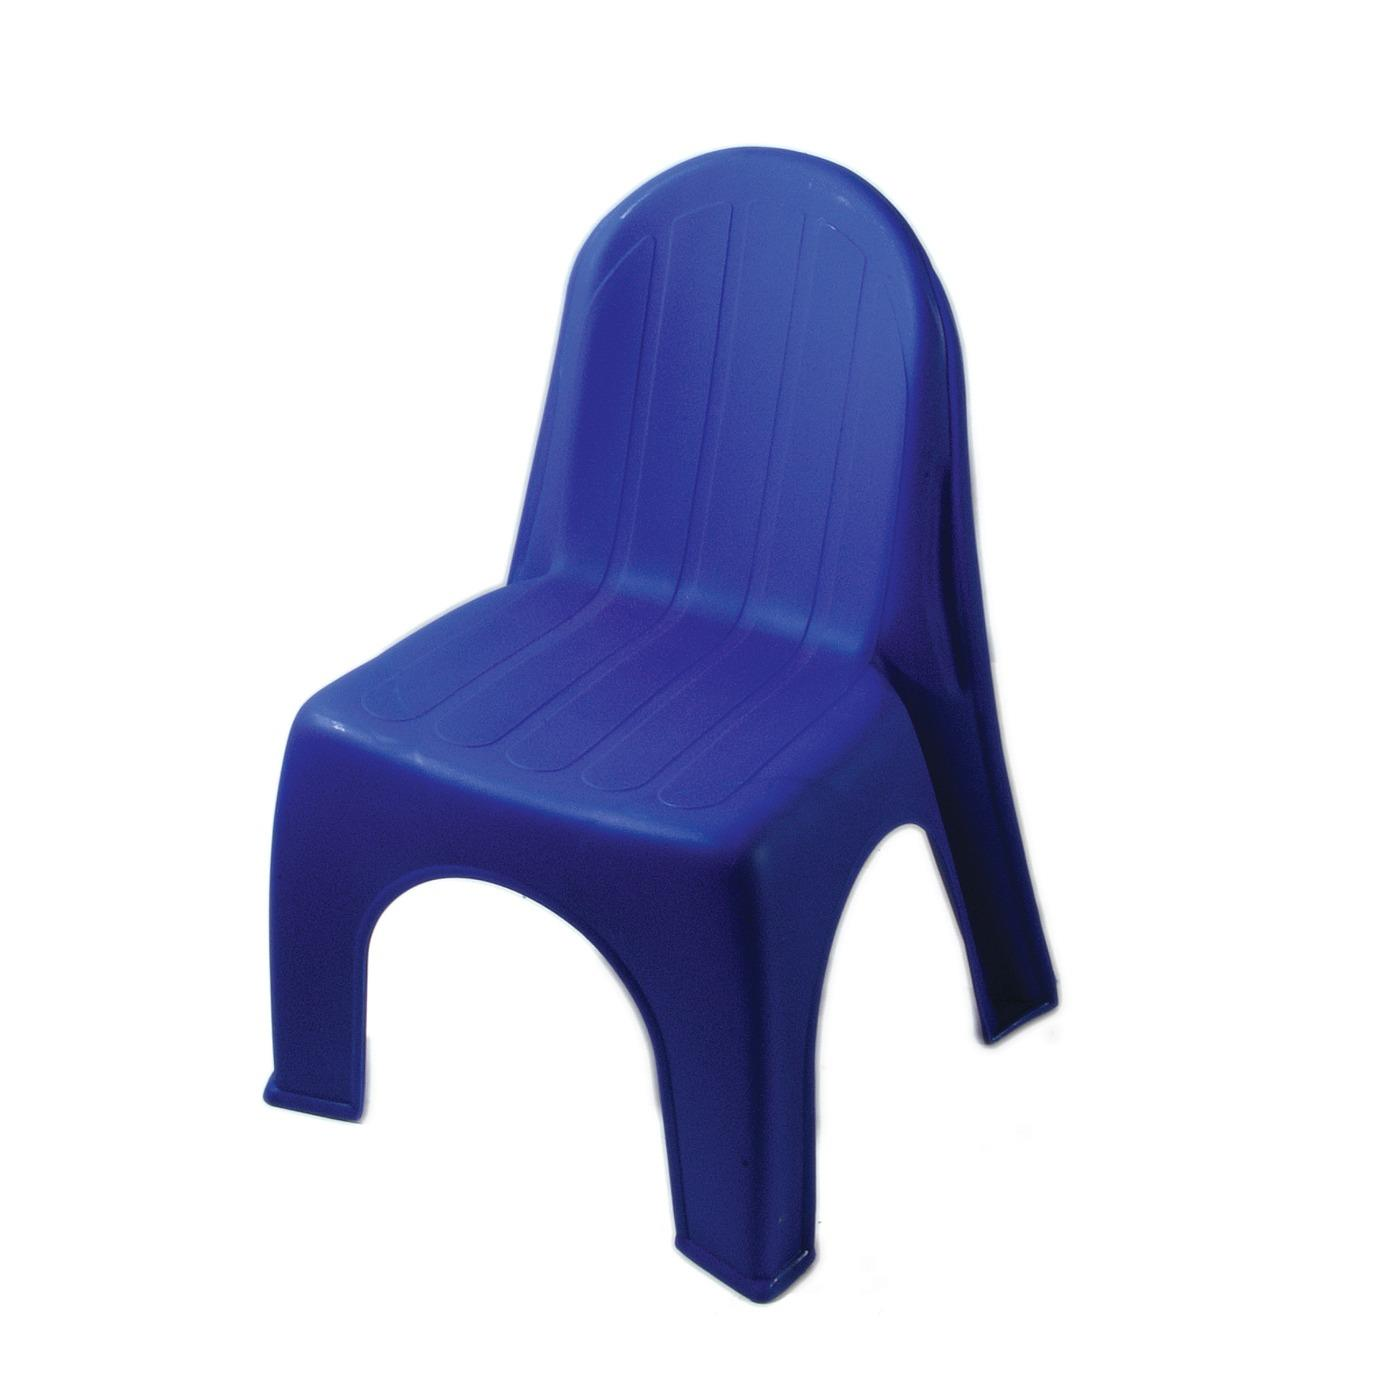 Plastic Children's Chair - Blue